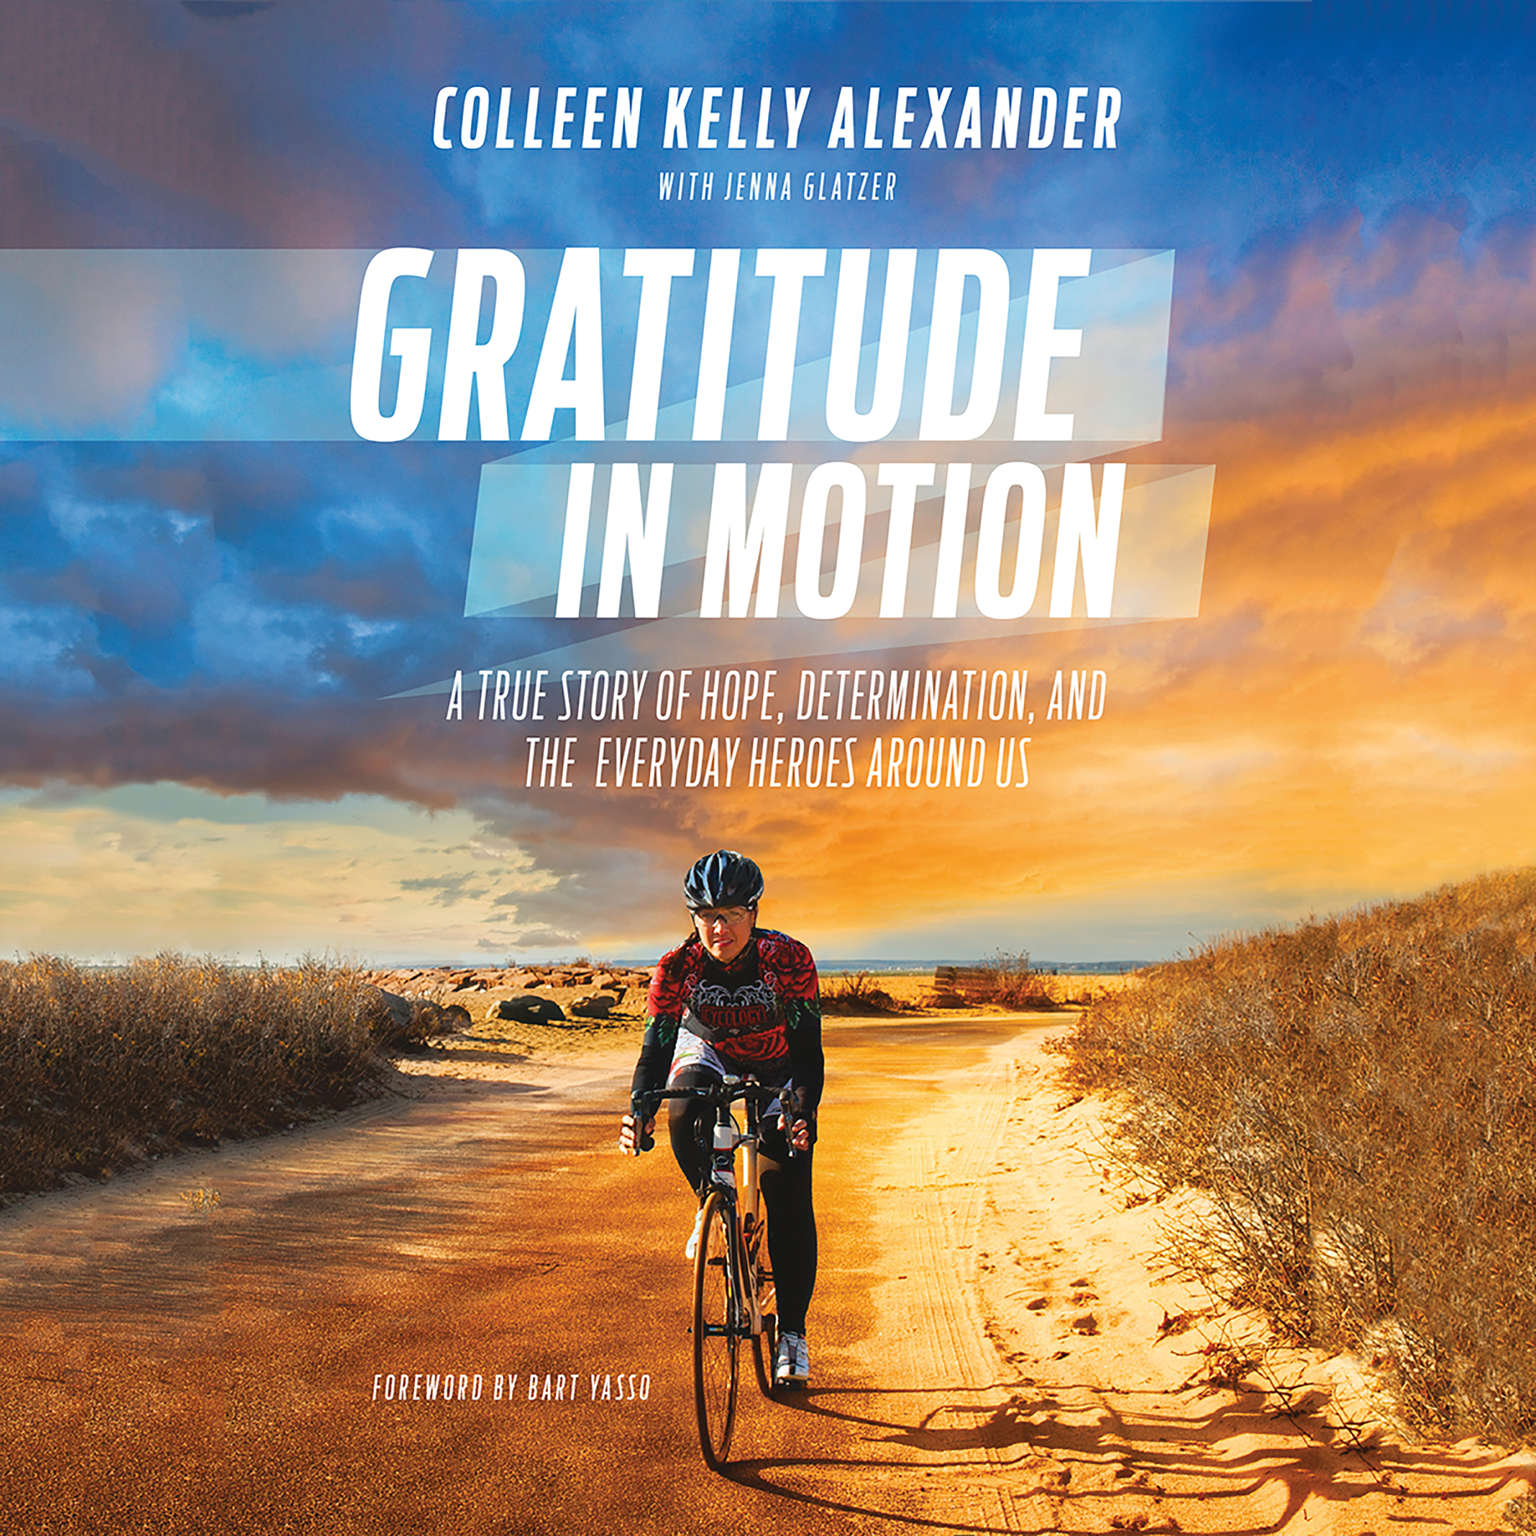 Gratitude in Motion: A True Story of Hope, Determination, and the Everyday Heroes Around Us Audiobook, by Colleen Kelly Alexander